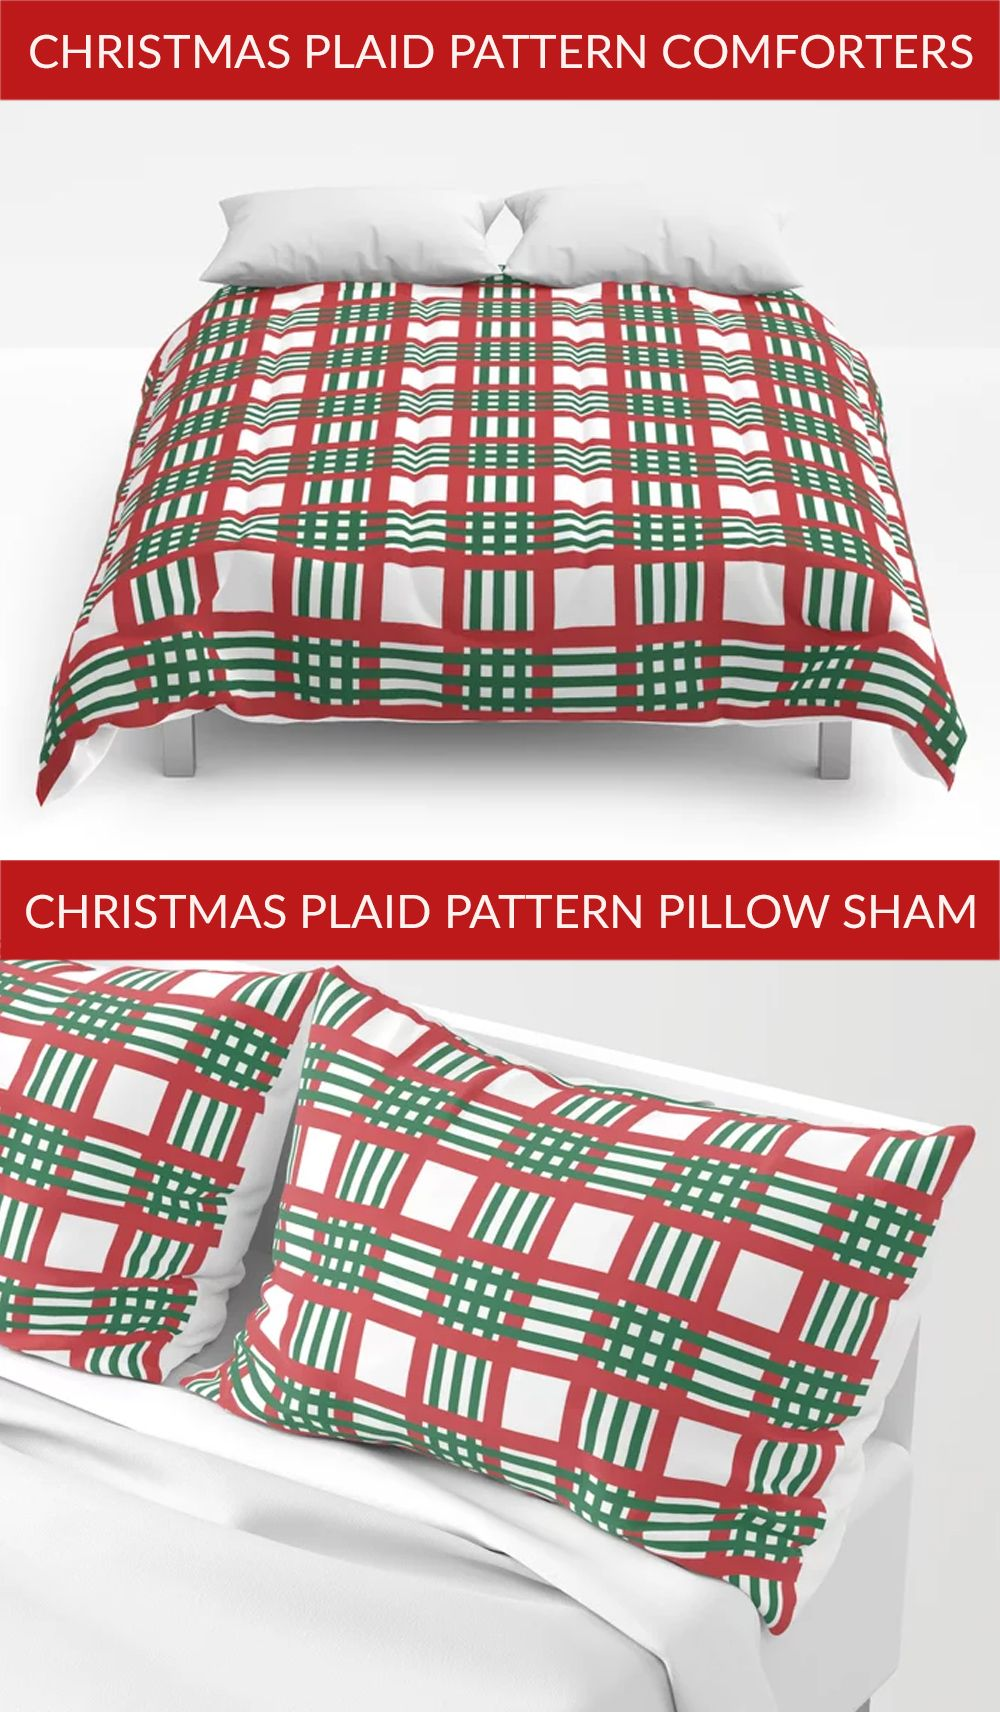 Want a cheerful home decor? then get these Christmas plaid pattern Comforters that will not only prodide you the warmth but also make your home decor cheerful. Get this matching Christmas plaid pattern Pillow Sham to complete the overall room decor. Get yours now. Click the link to buy now. #comforters #homedecor #bedding #decor #society6 #comforter #pillows #bed #Christmas #ChristmasShopping #Christmasdecor #Christmas2020 #Christmasplaid #Christmasplaidpattern #red #green #Christmastime #Xmas